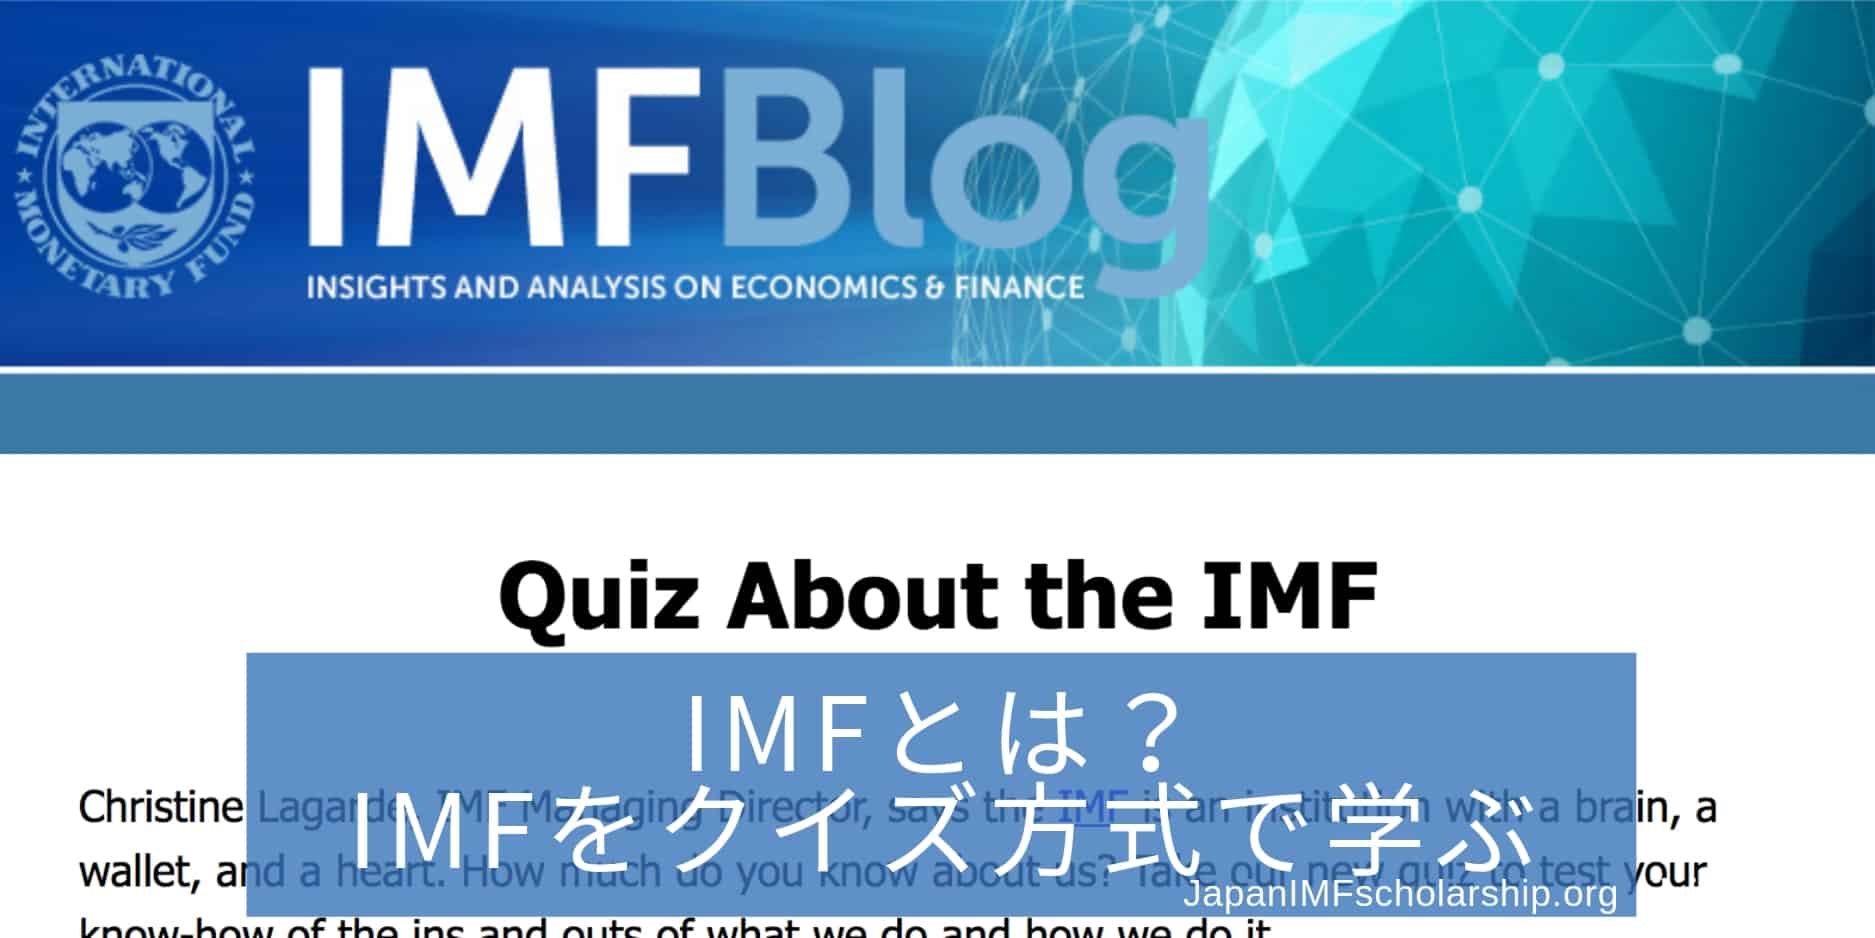 jisp web-fb imf blog about quiz about imf